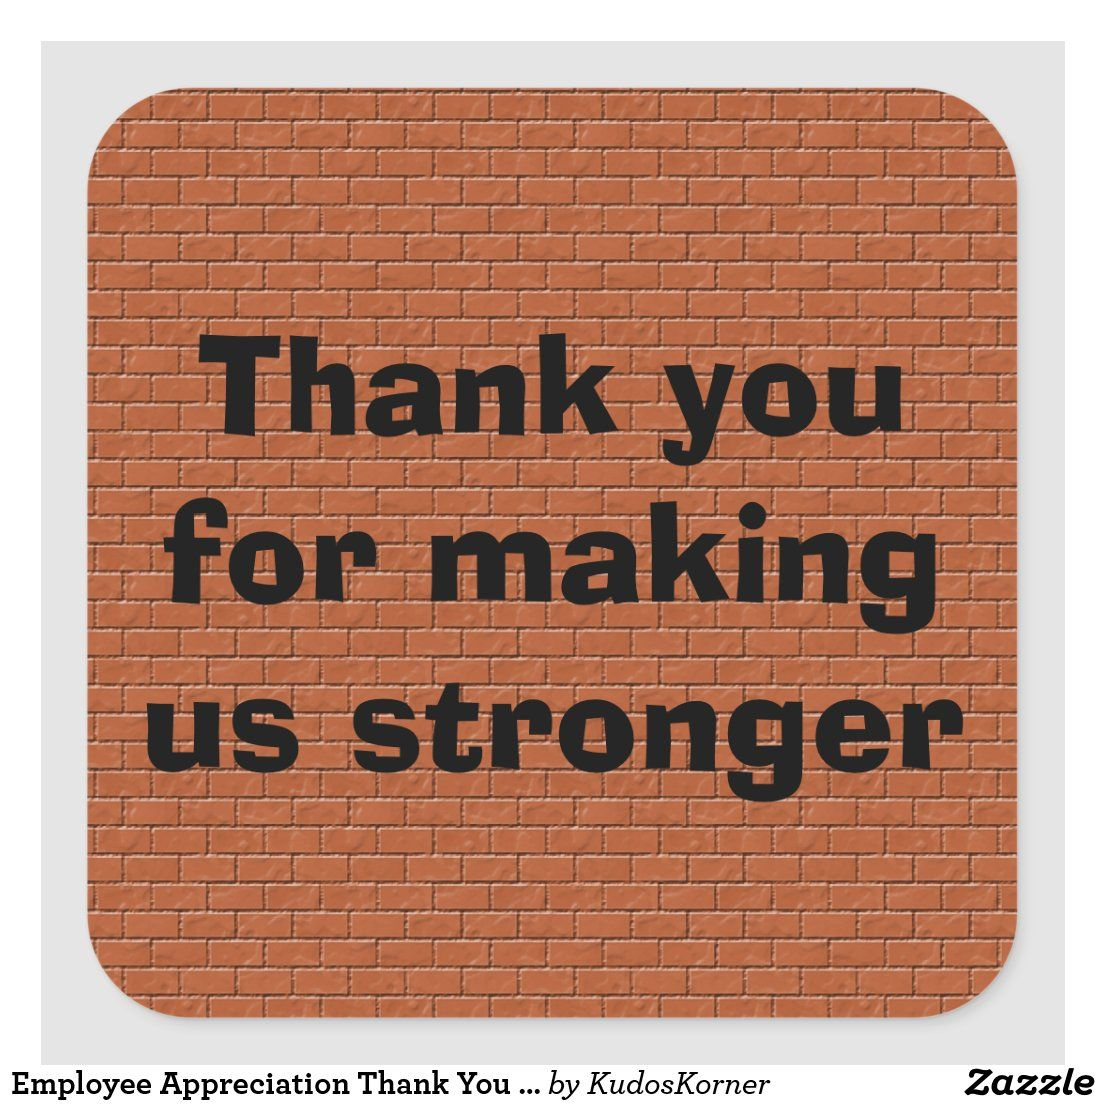 Employee Appreciation Thank You Make Us Stronger Square Sticker | Zazzle.com